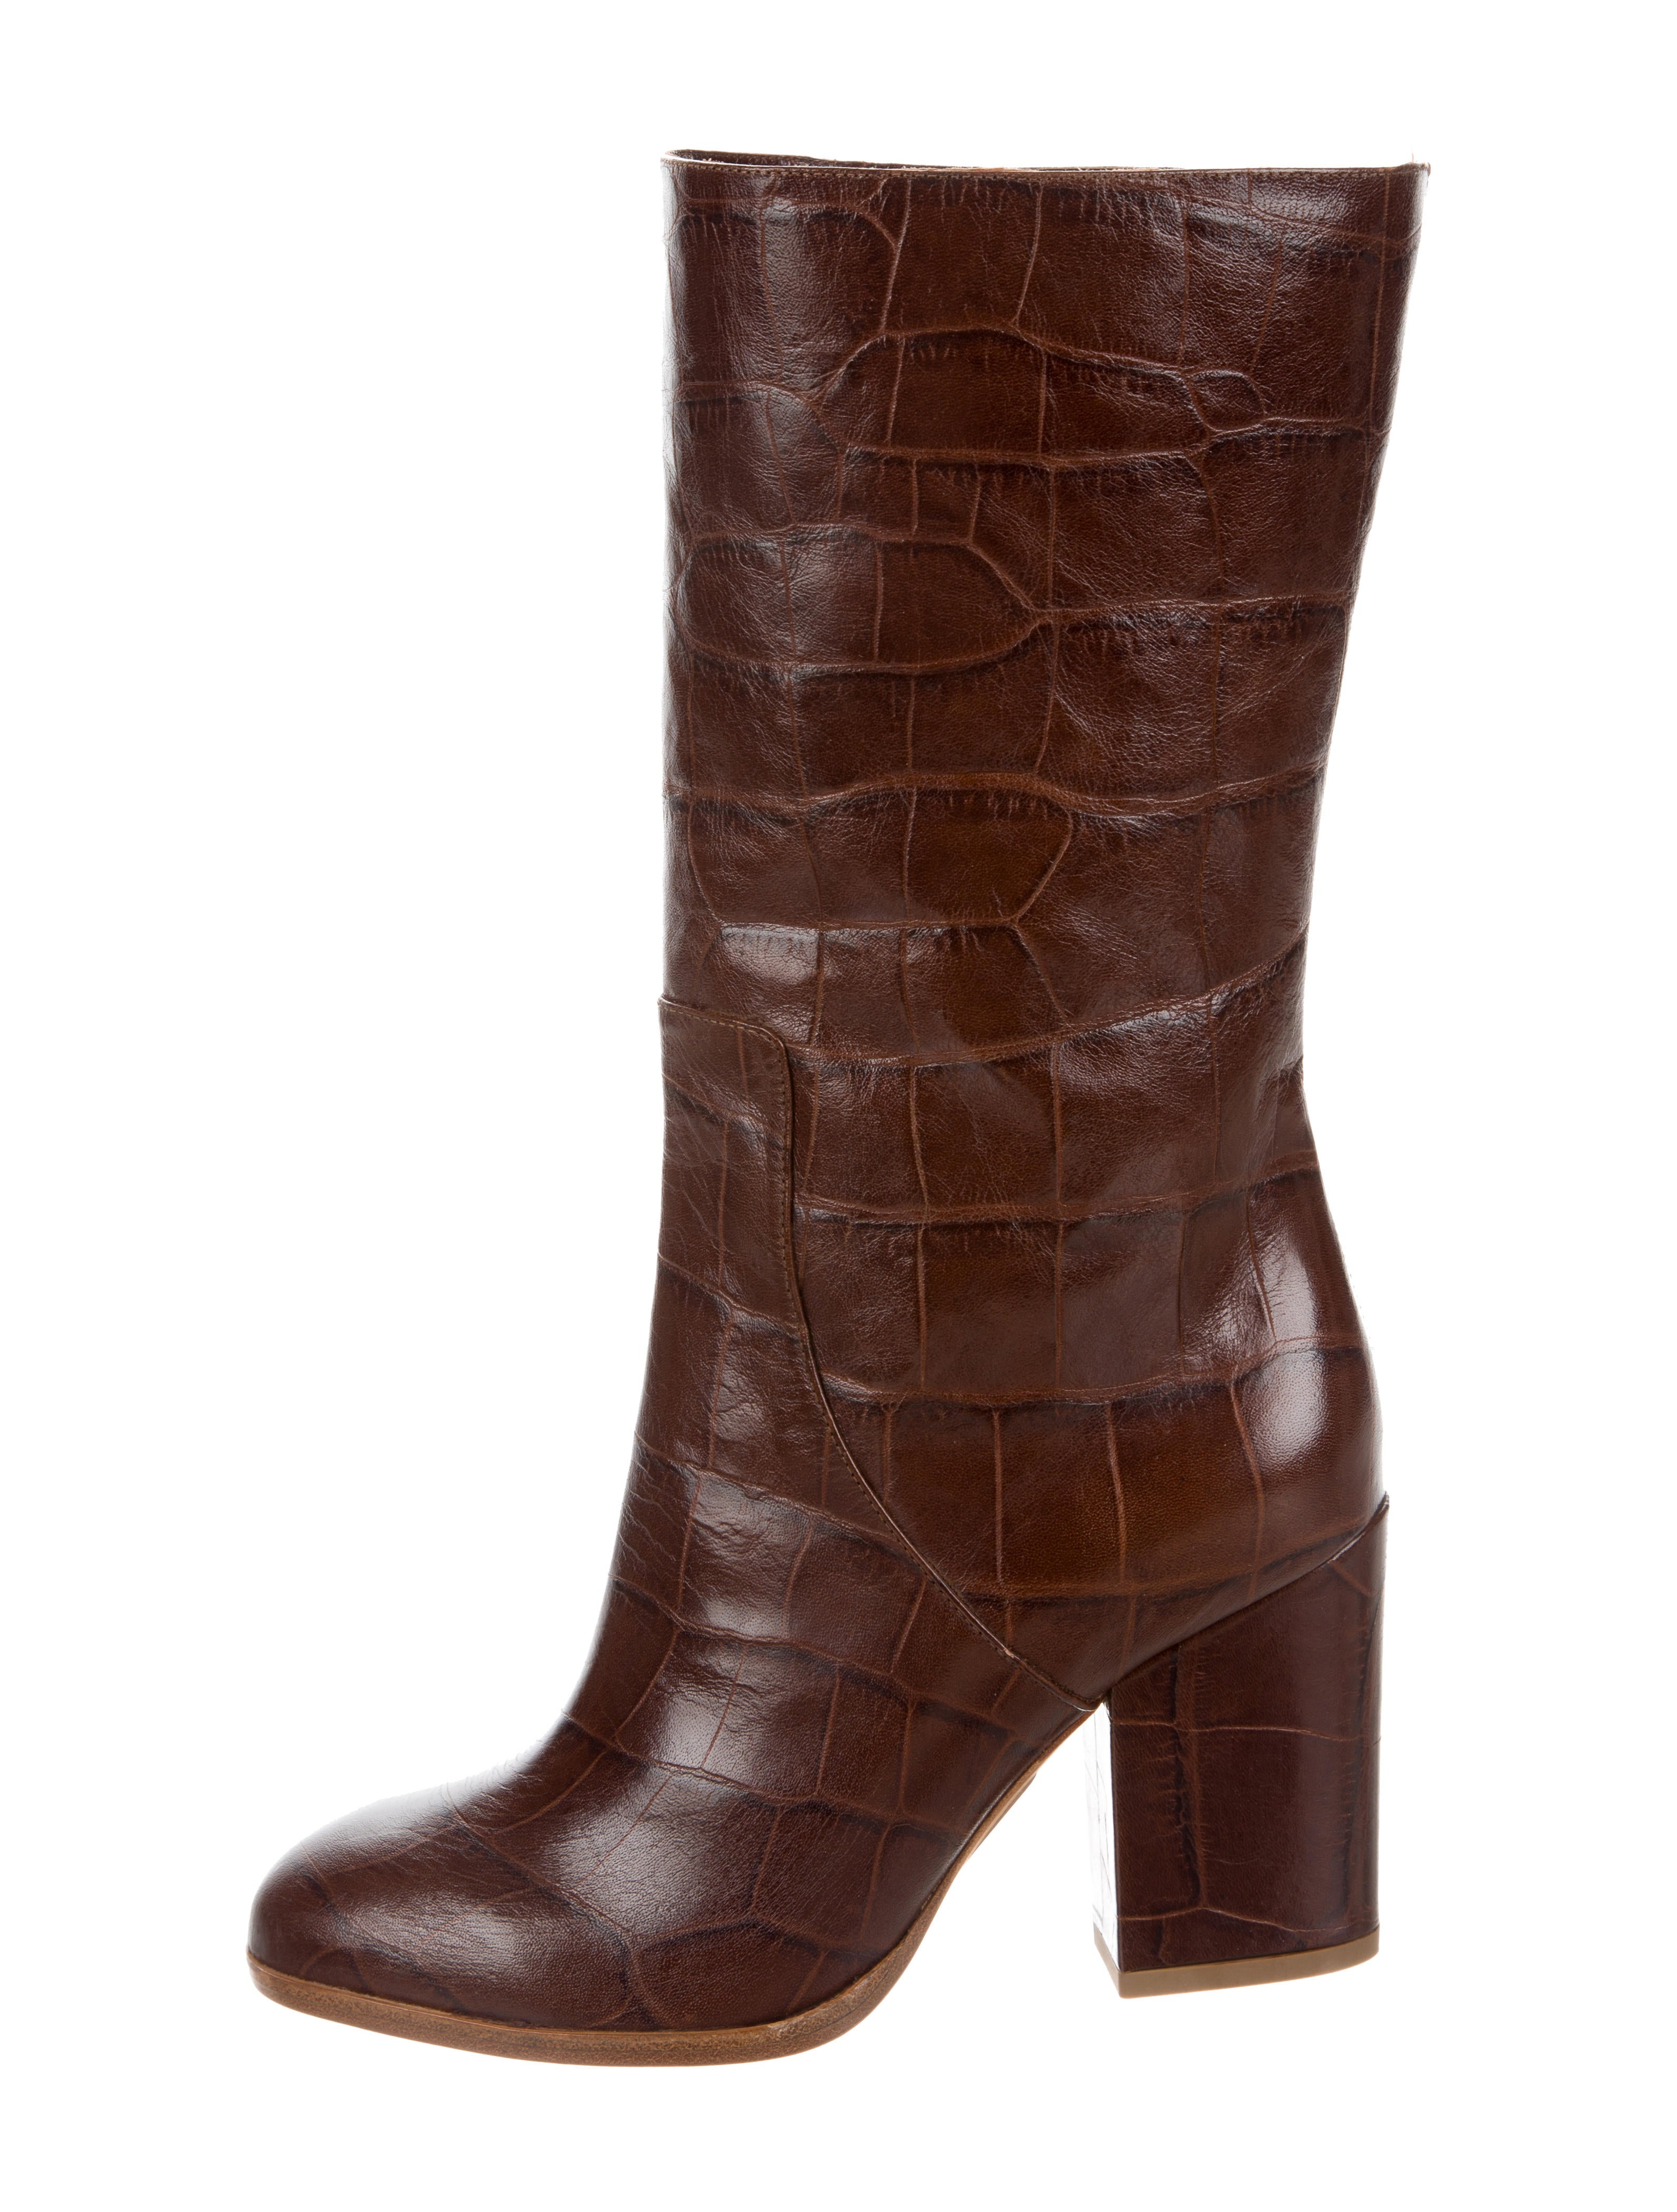 recommend cheap online Alexa Wagner Heidi Embossed Boots w/ Tags outlet cheap price view best prices for sale GoqM4